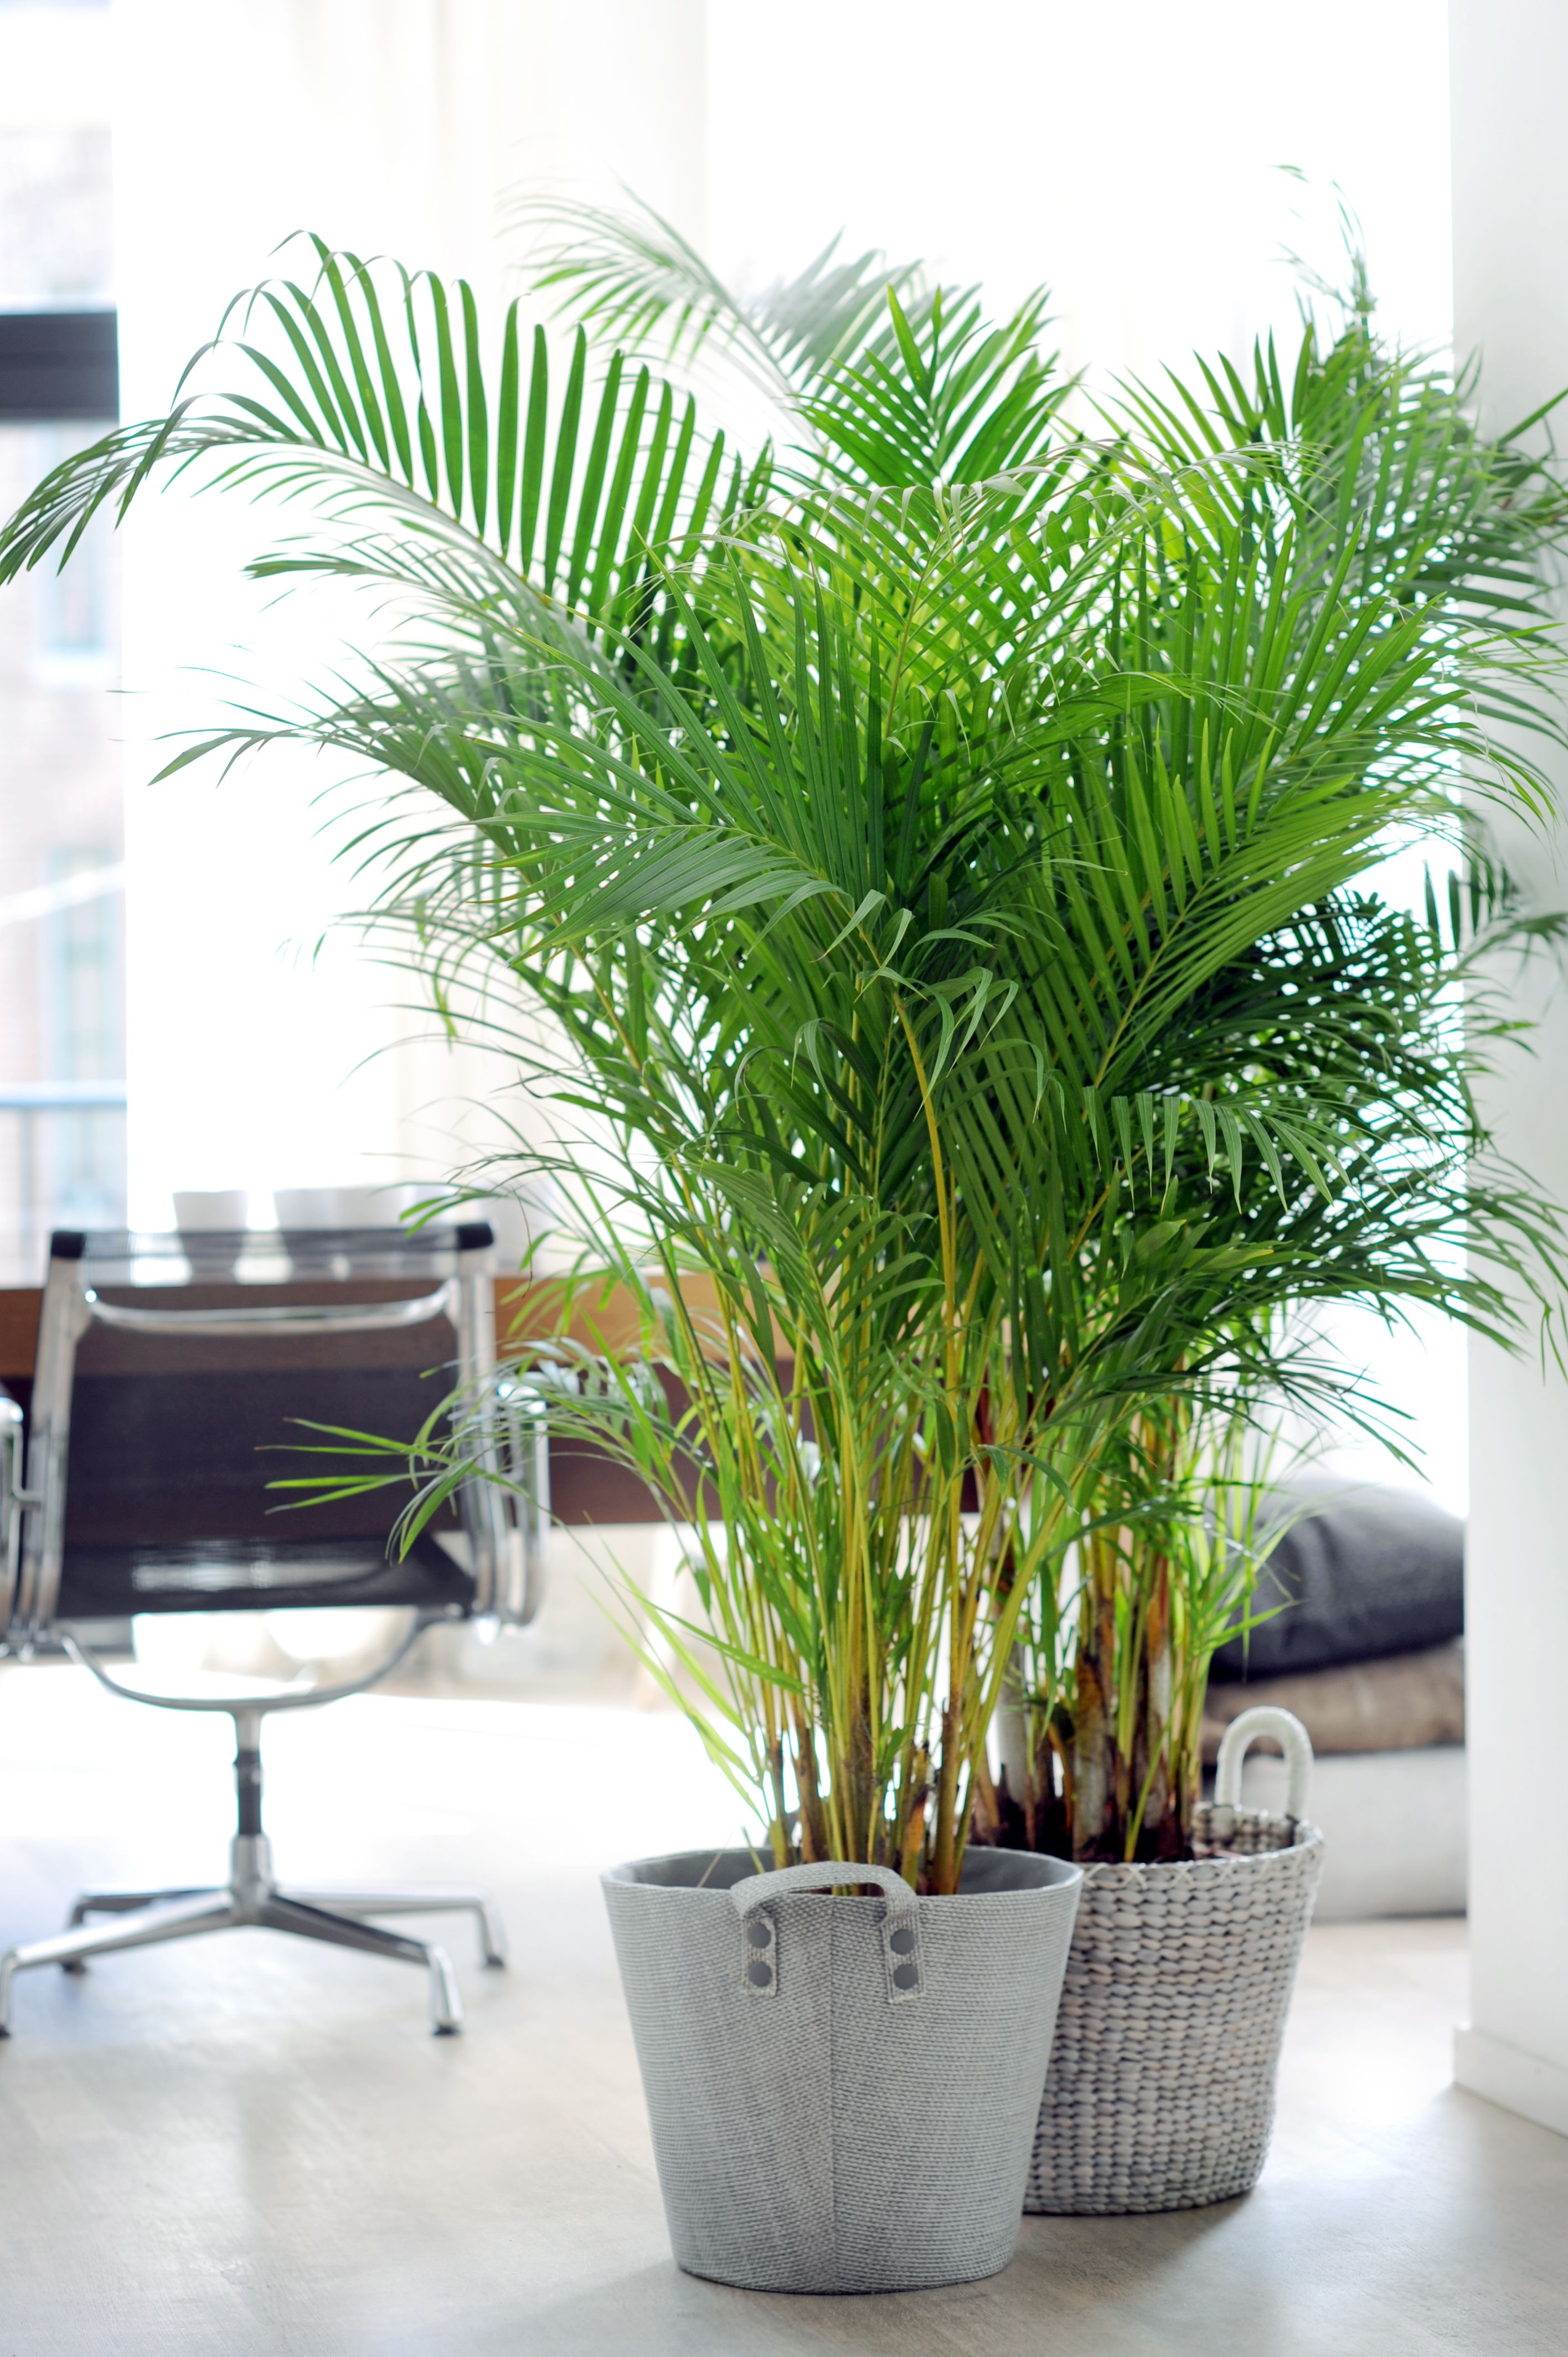 palm tree types and care, dwarf palm tree care, palm tree entertainment, fan palm plant care, palm tree desk lamp, potted palm tree care, phoenix palm care, indoor palm trees care, fittonia argyroneura care, palm tree bonsai care, palm tree diseases and cures, areca palm tree care, palm tree care guide, kentia palm tree care, palm tree sunlight, palm tree trunk care, queen palm plant care, palm tree bamboo care, palm tree norfolk pine, palm tree plants, on palm tree houseplant care